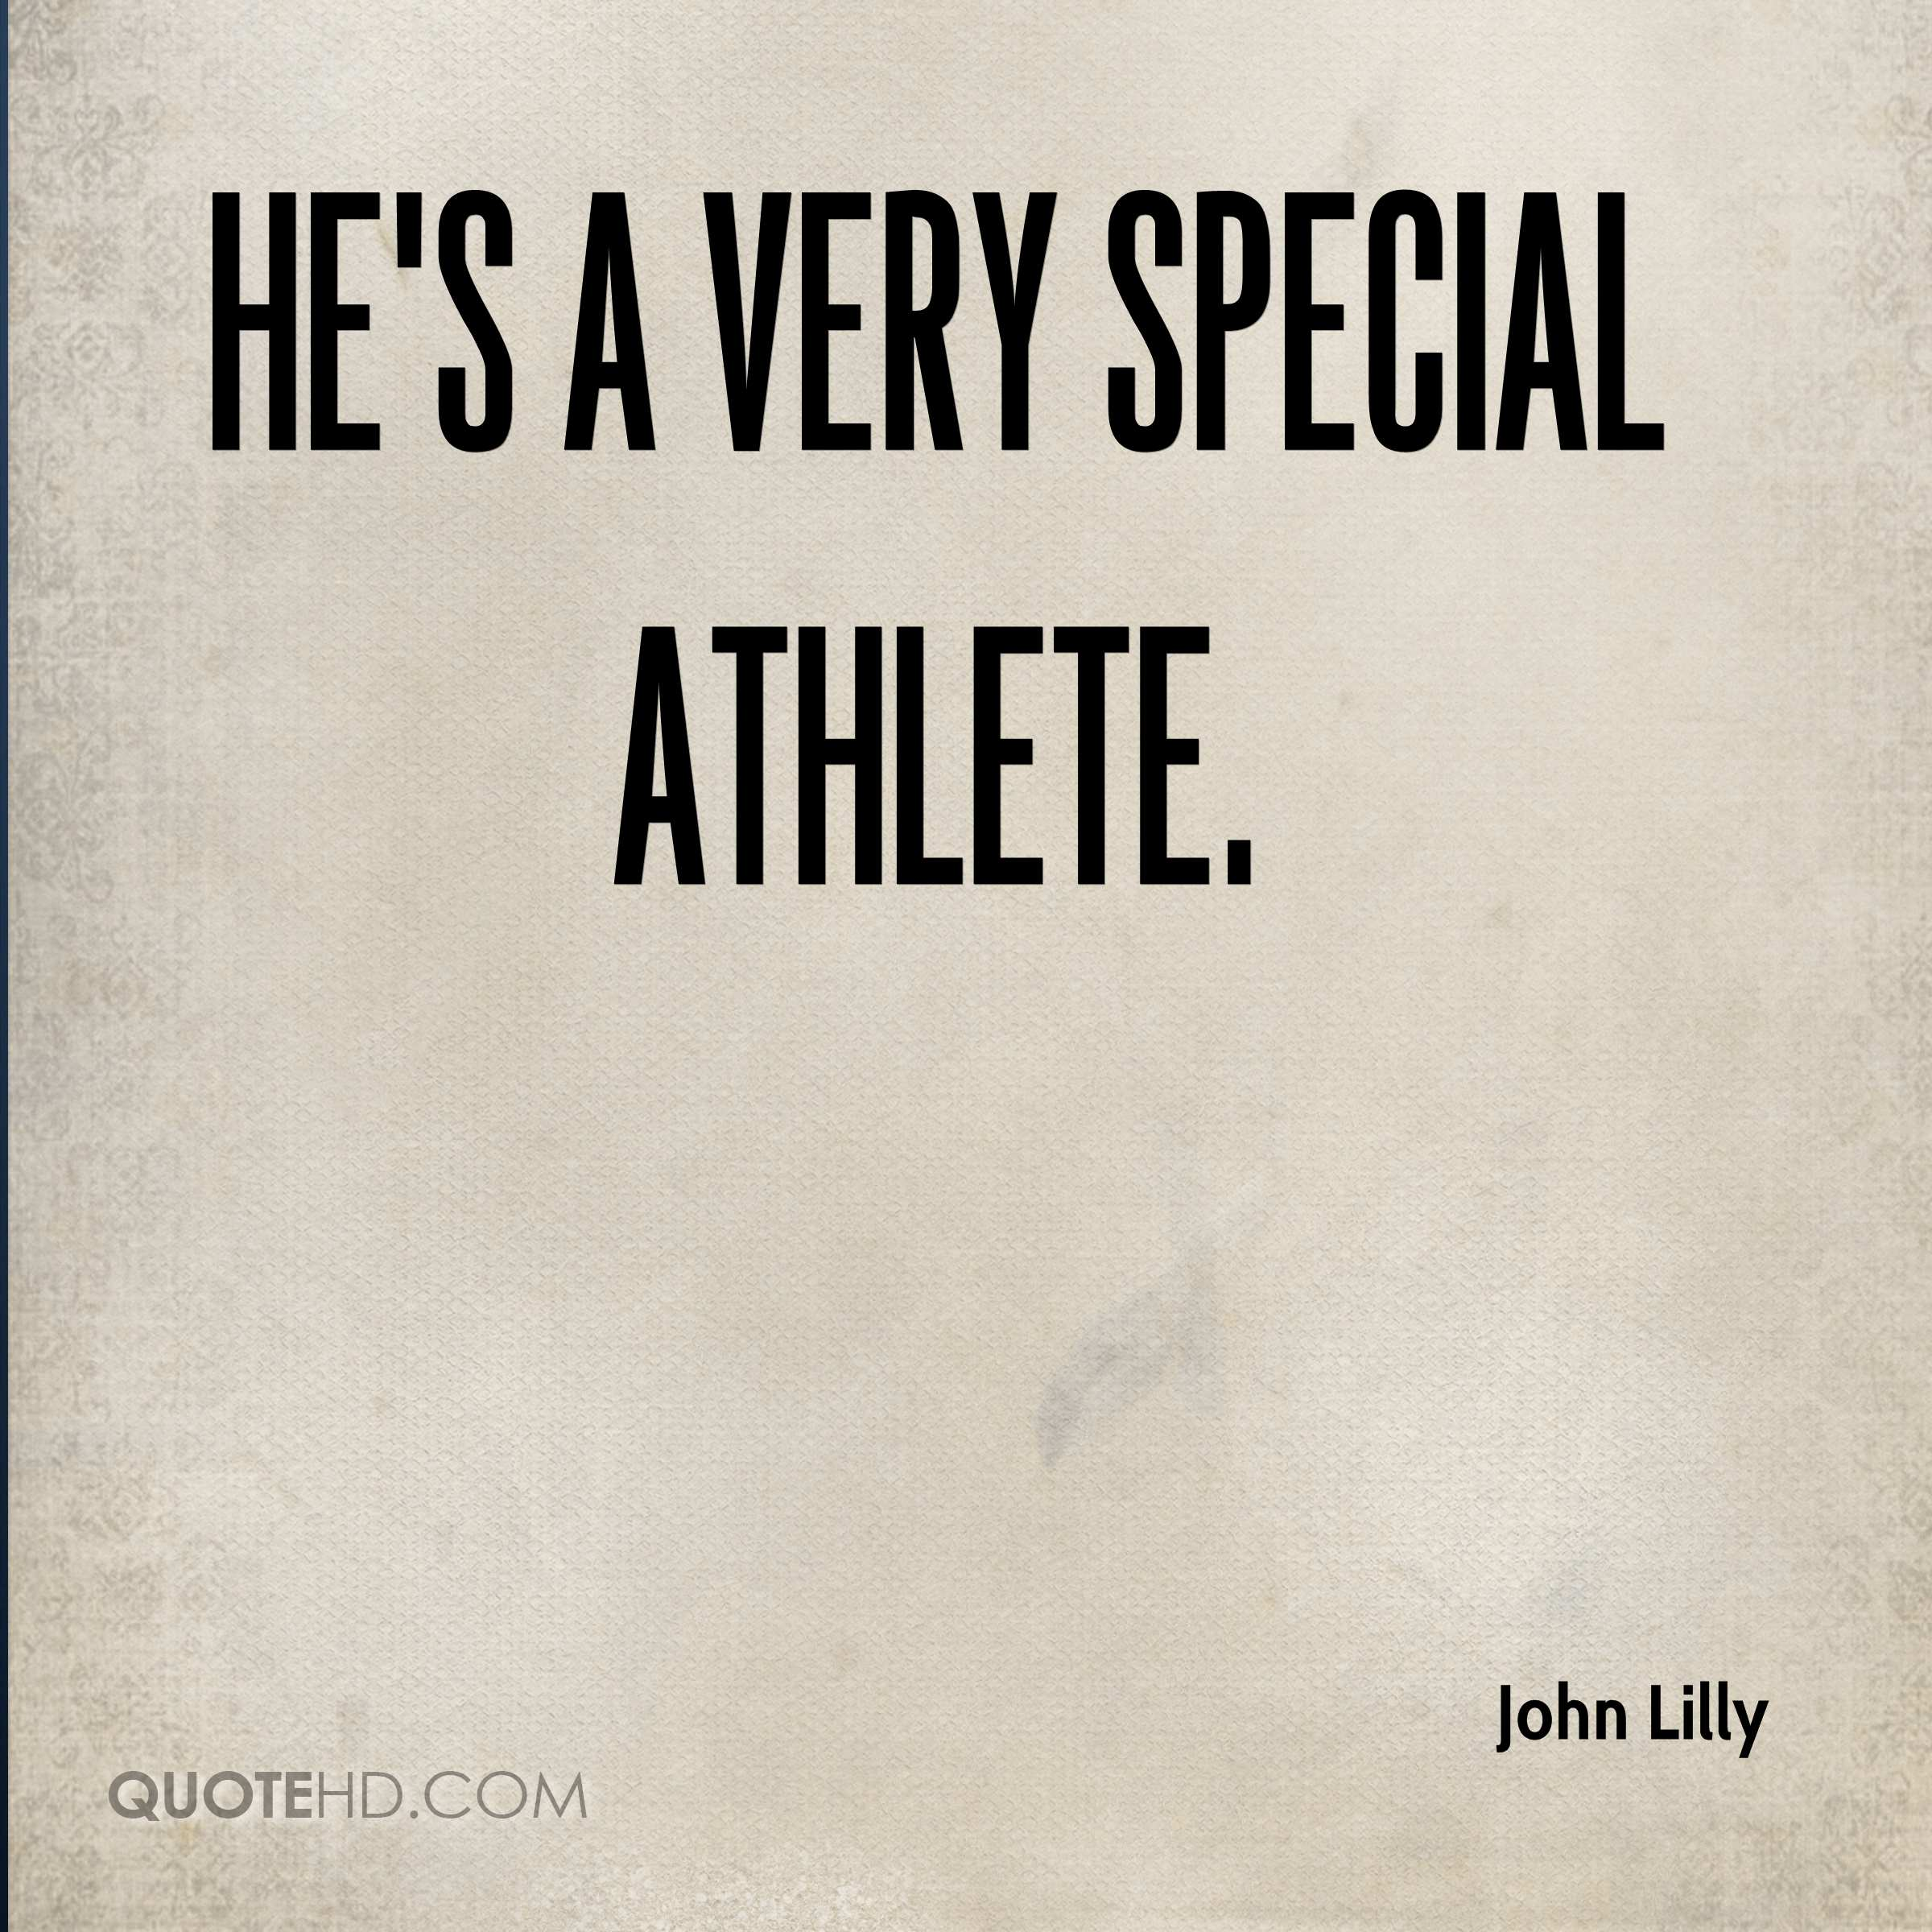 He's a very special athlete.